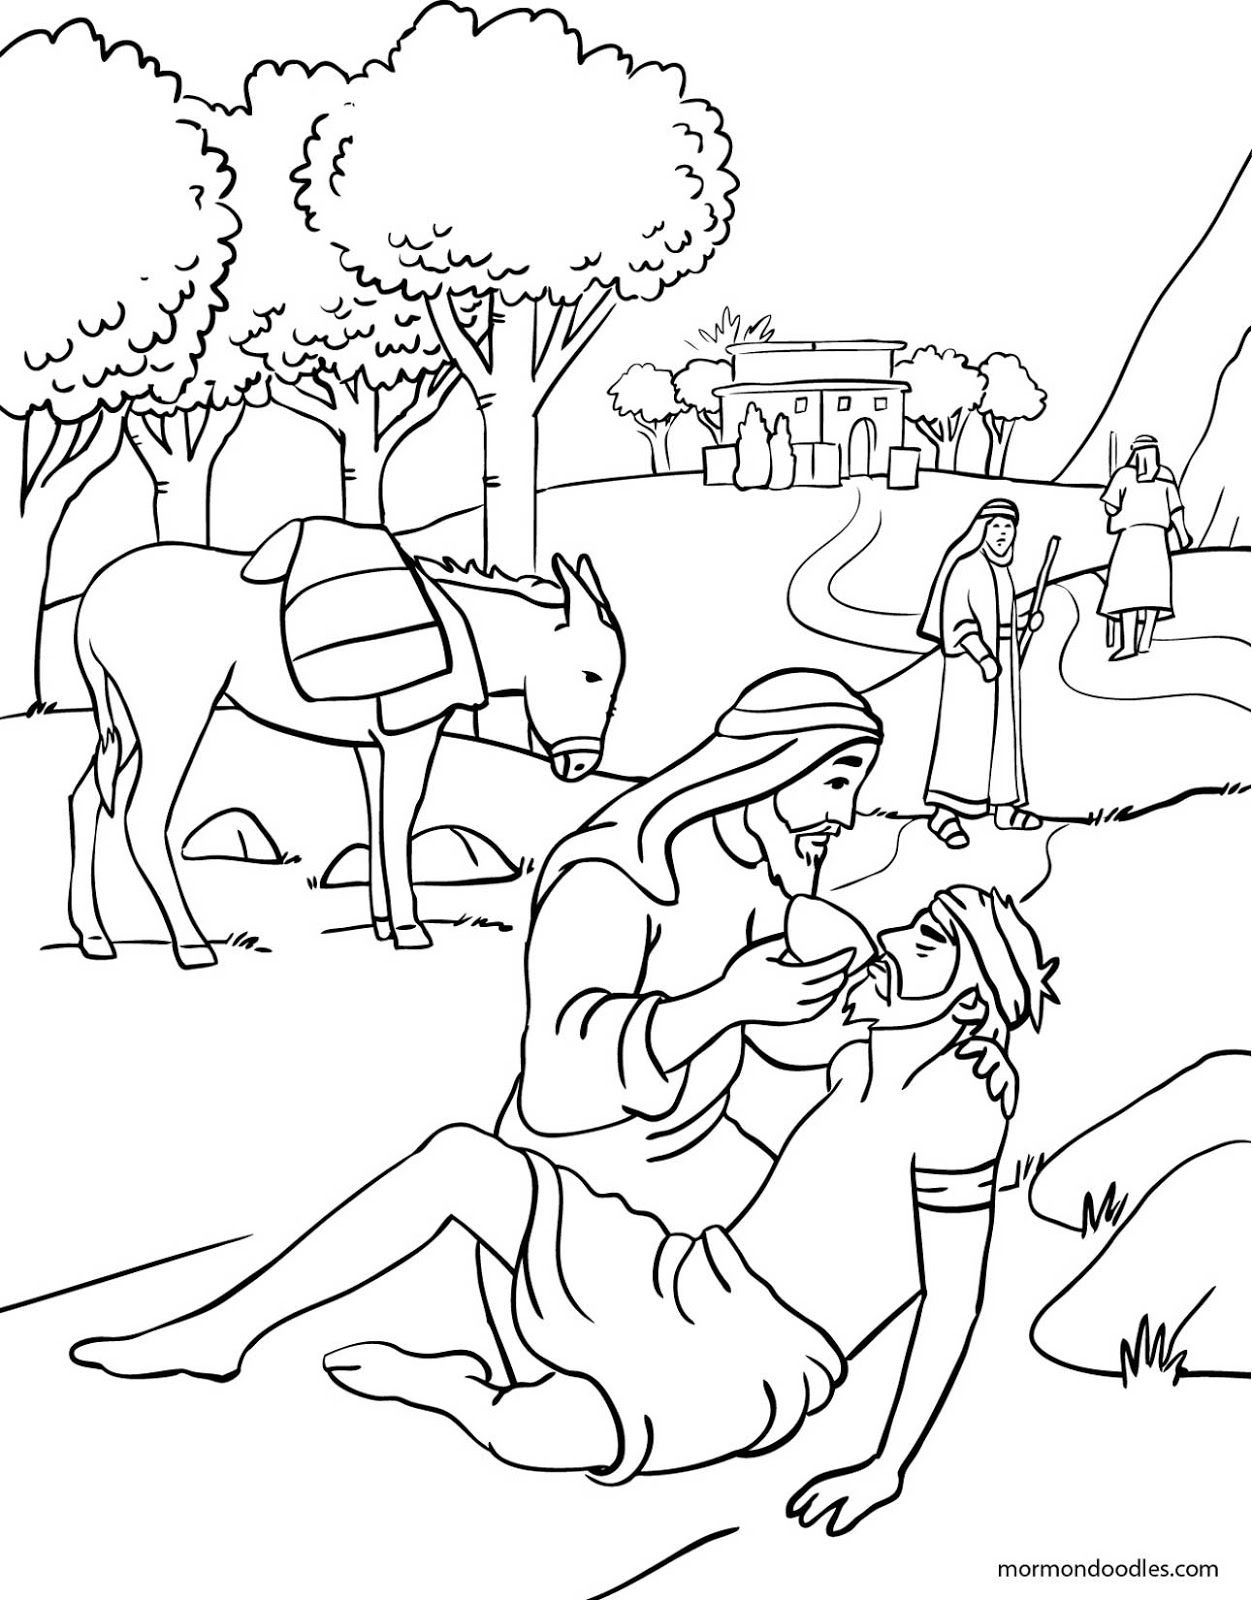 graphic about Good Samaritan Coloring Page Printable identify Mormon Doodles: The Favourable Samaritan Coloring Webpage Church